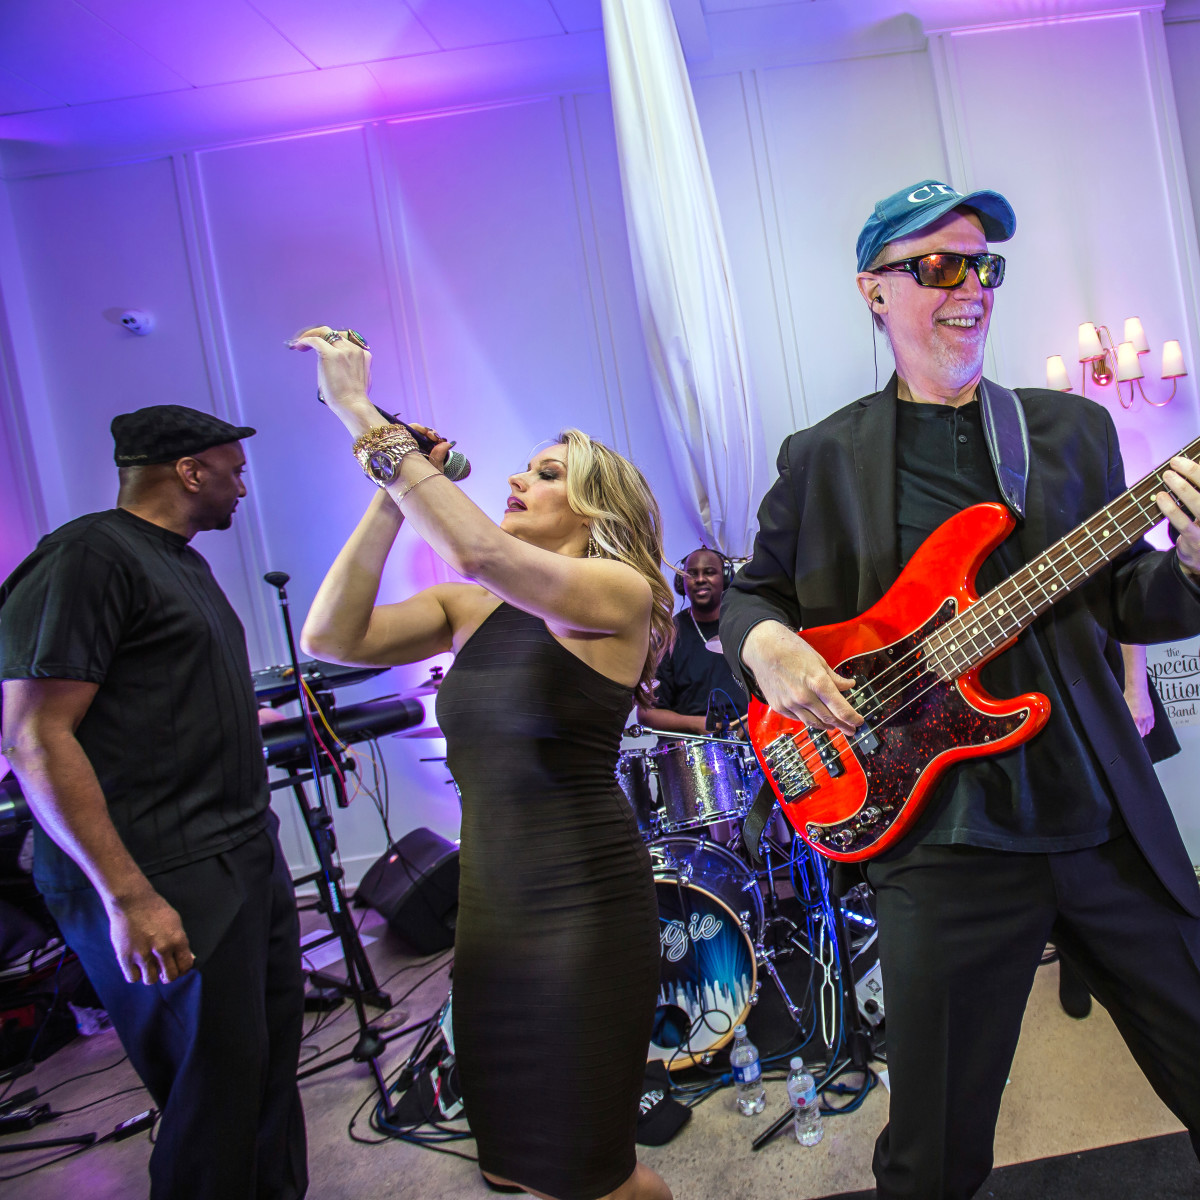 Dallas, CASAblanca gala, January 2018, The Special Edition Band